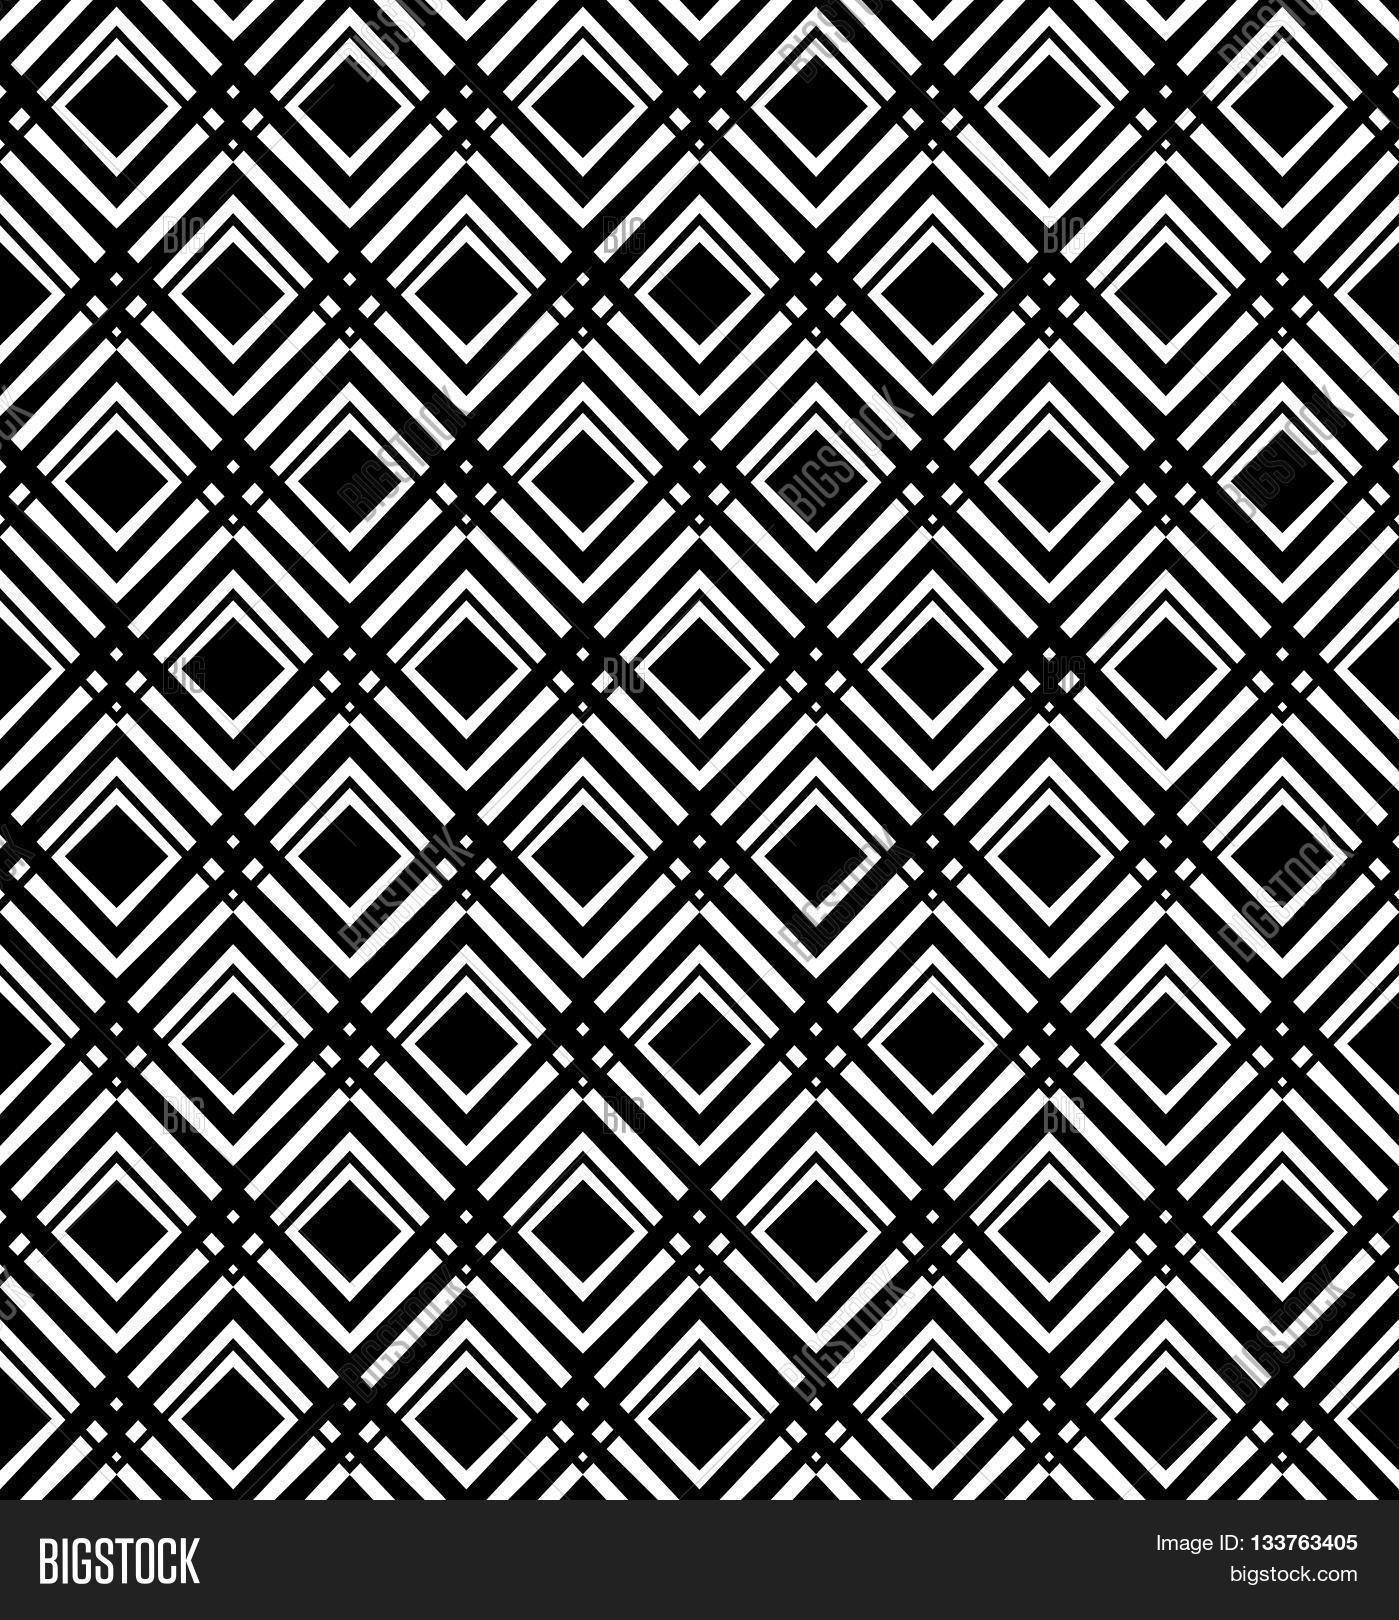 optical art pattern seamless background black and white 1